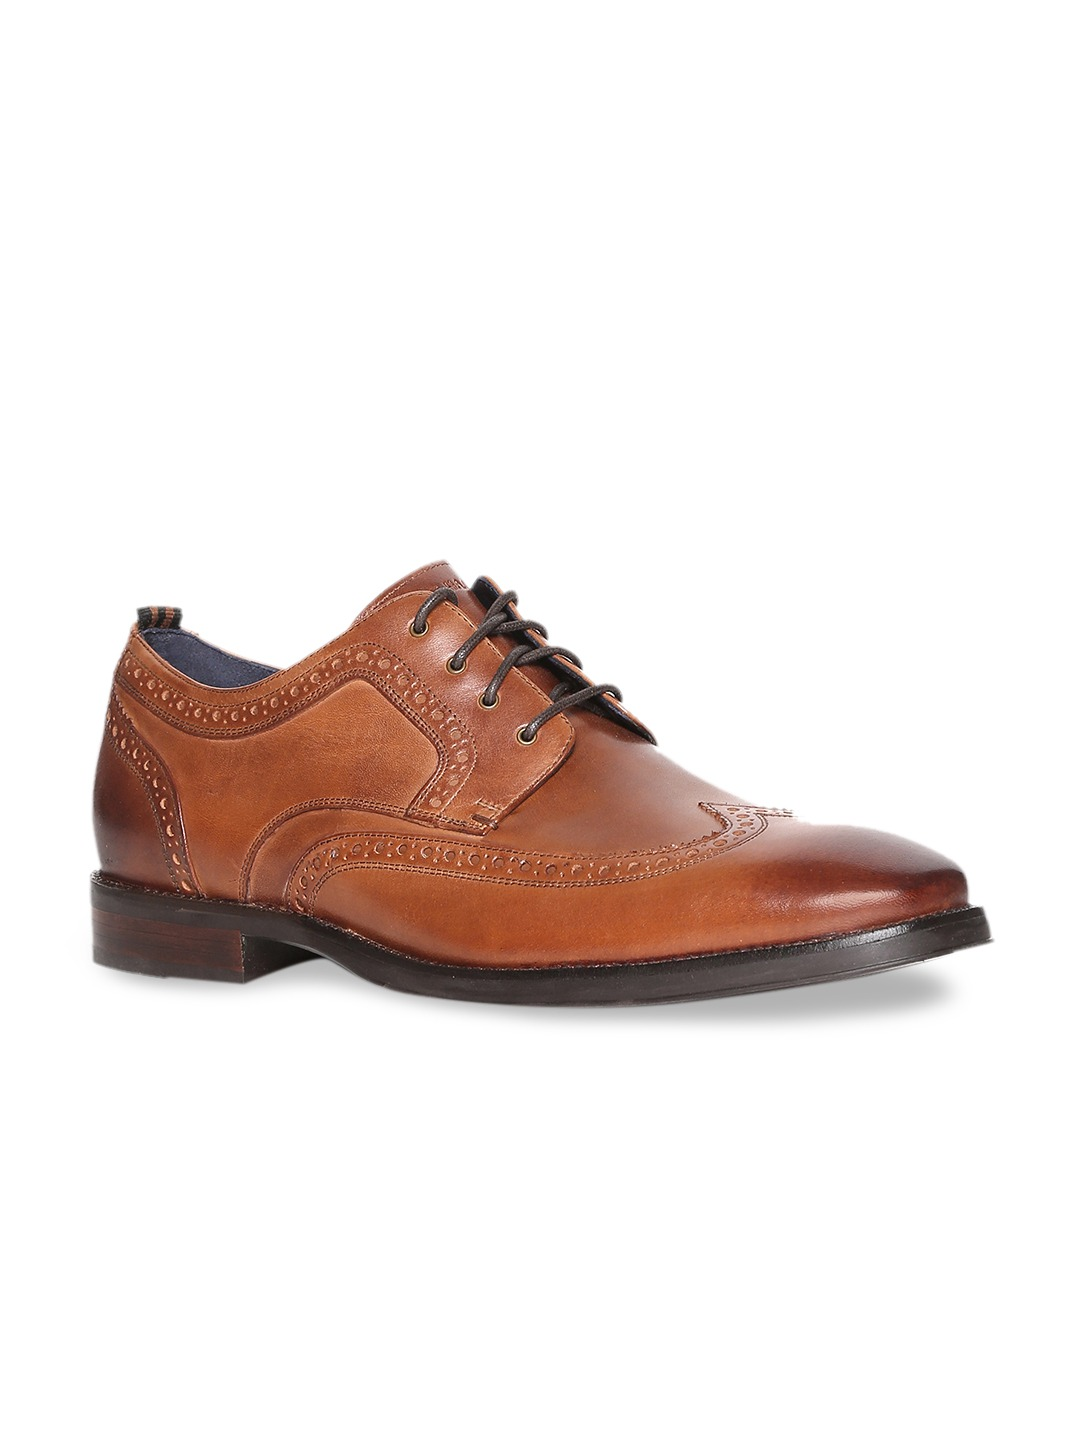 Tan Brown Formal Leather Brogues